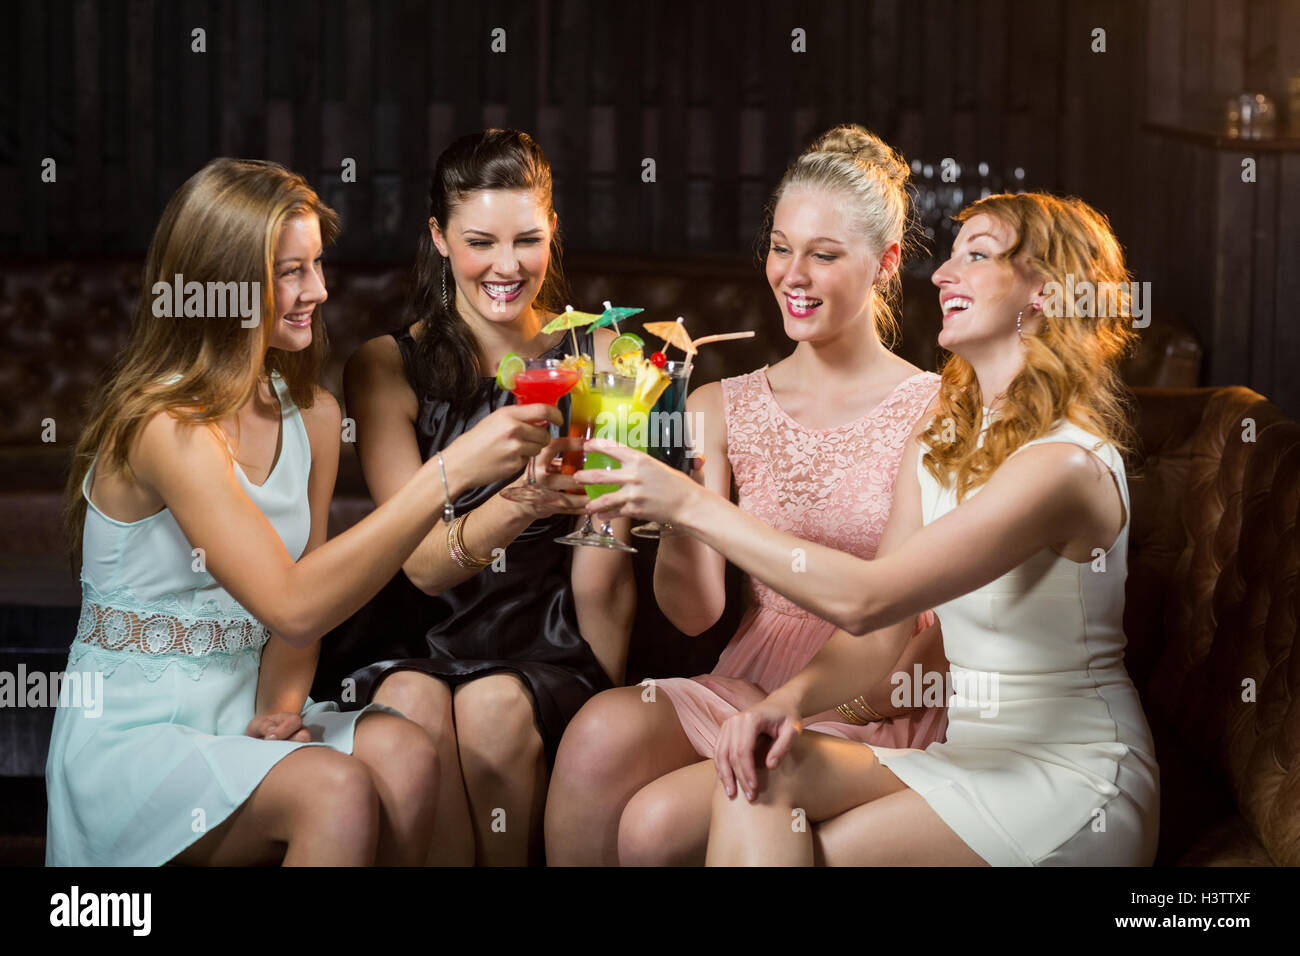 Female friends toasting glasses of cocktail in bar Stock Photo